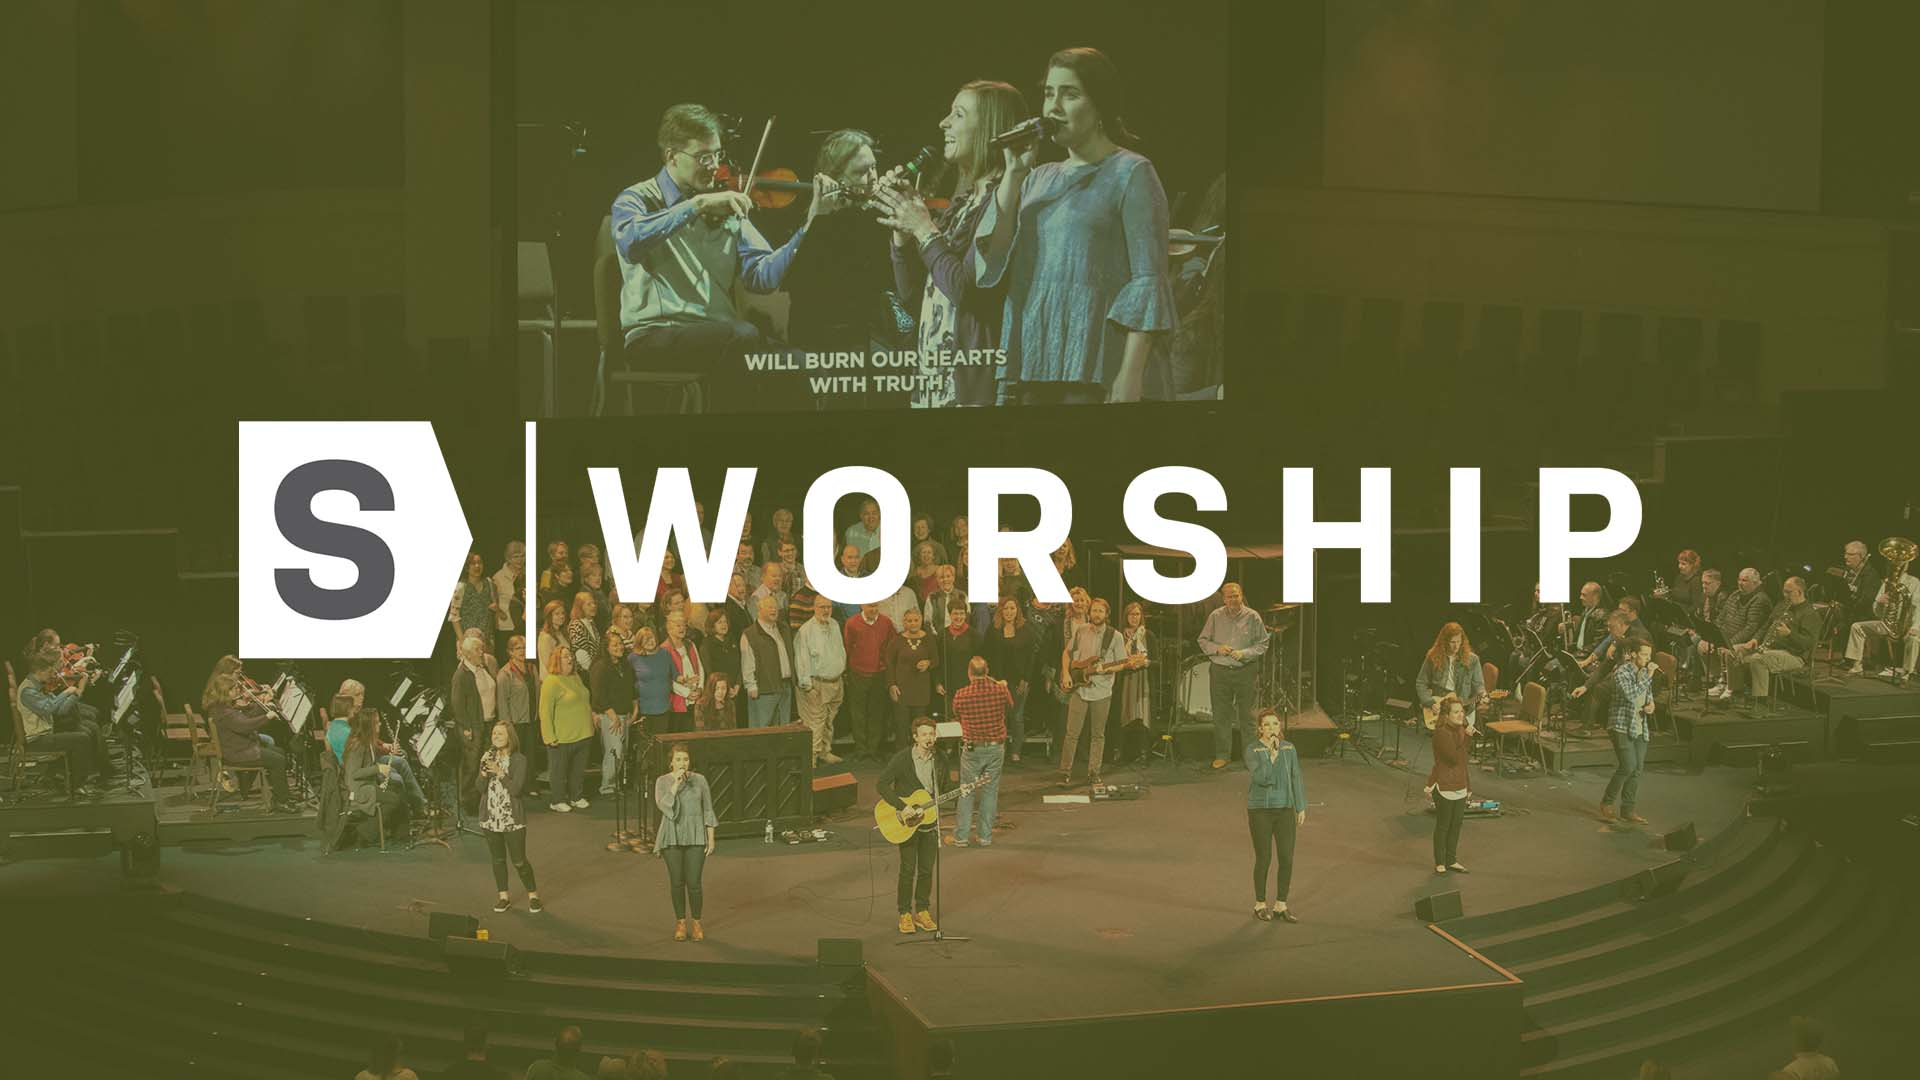 Worship = Worth Ship.